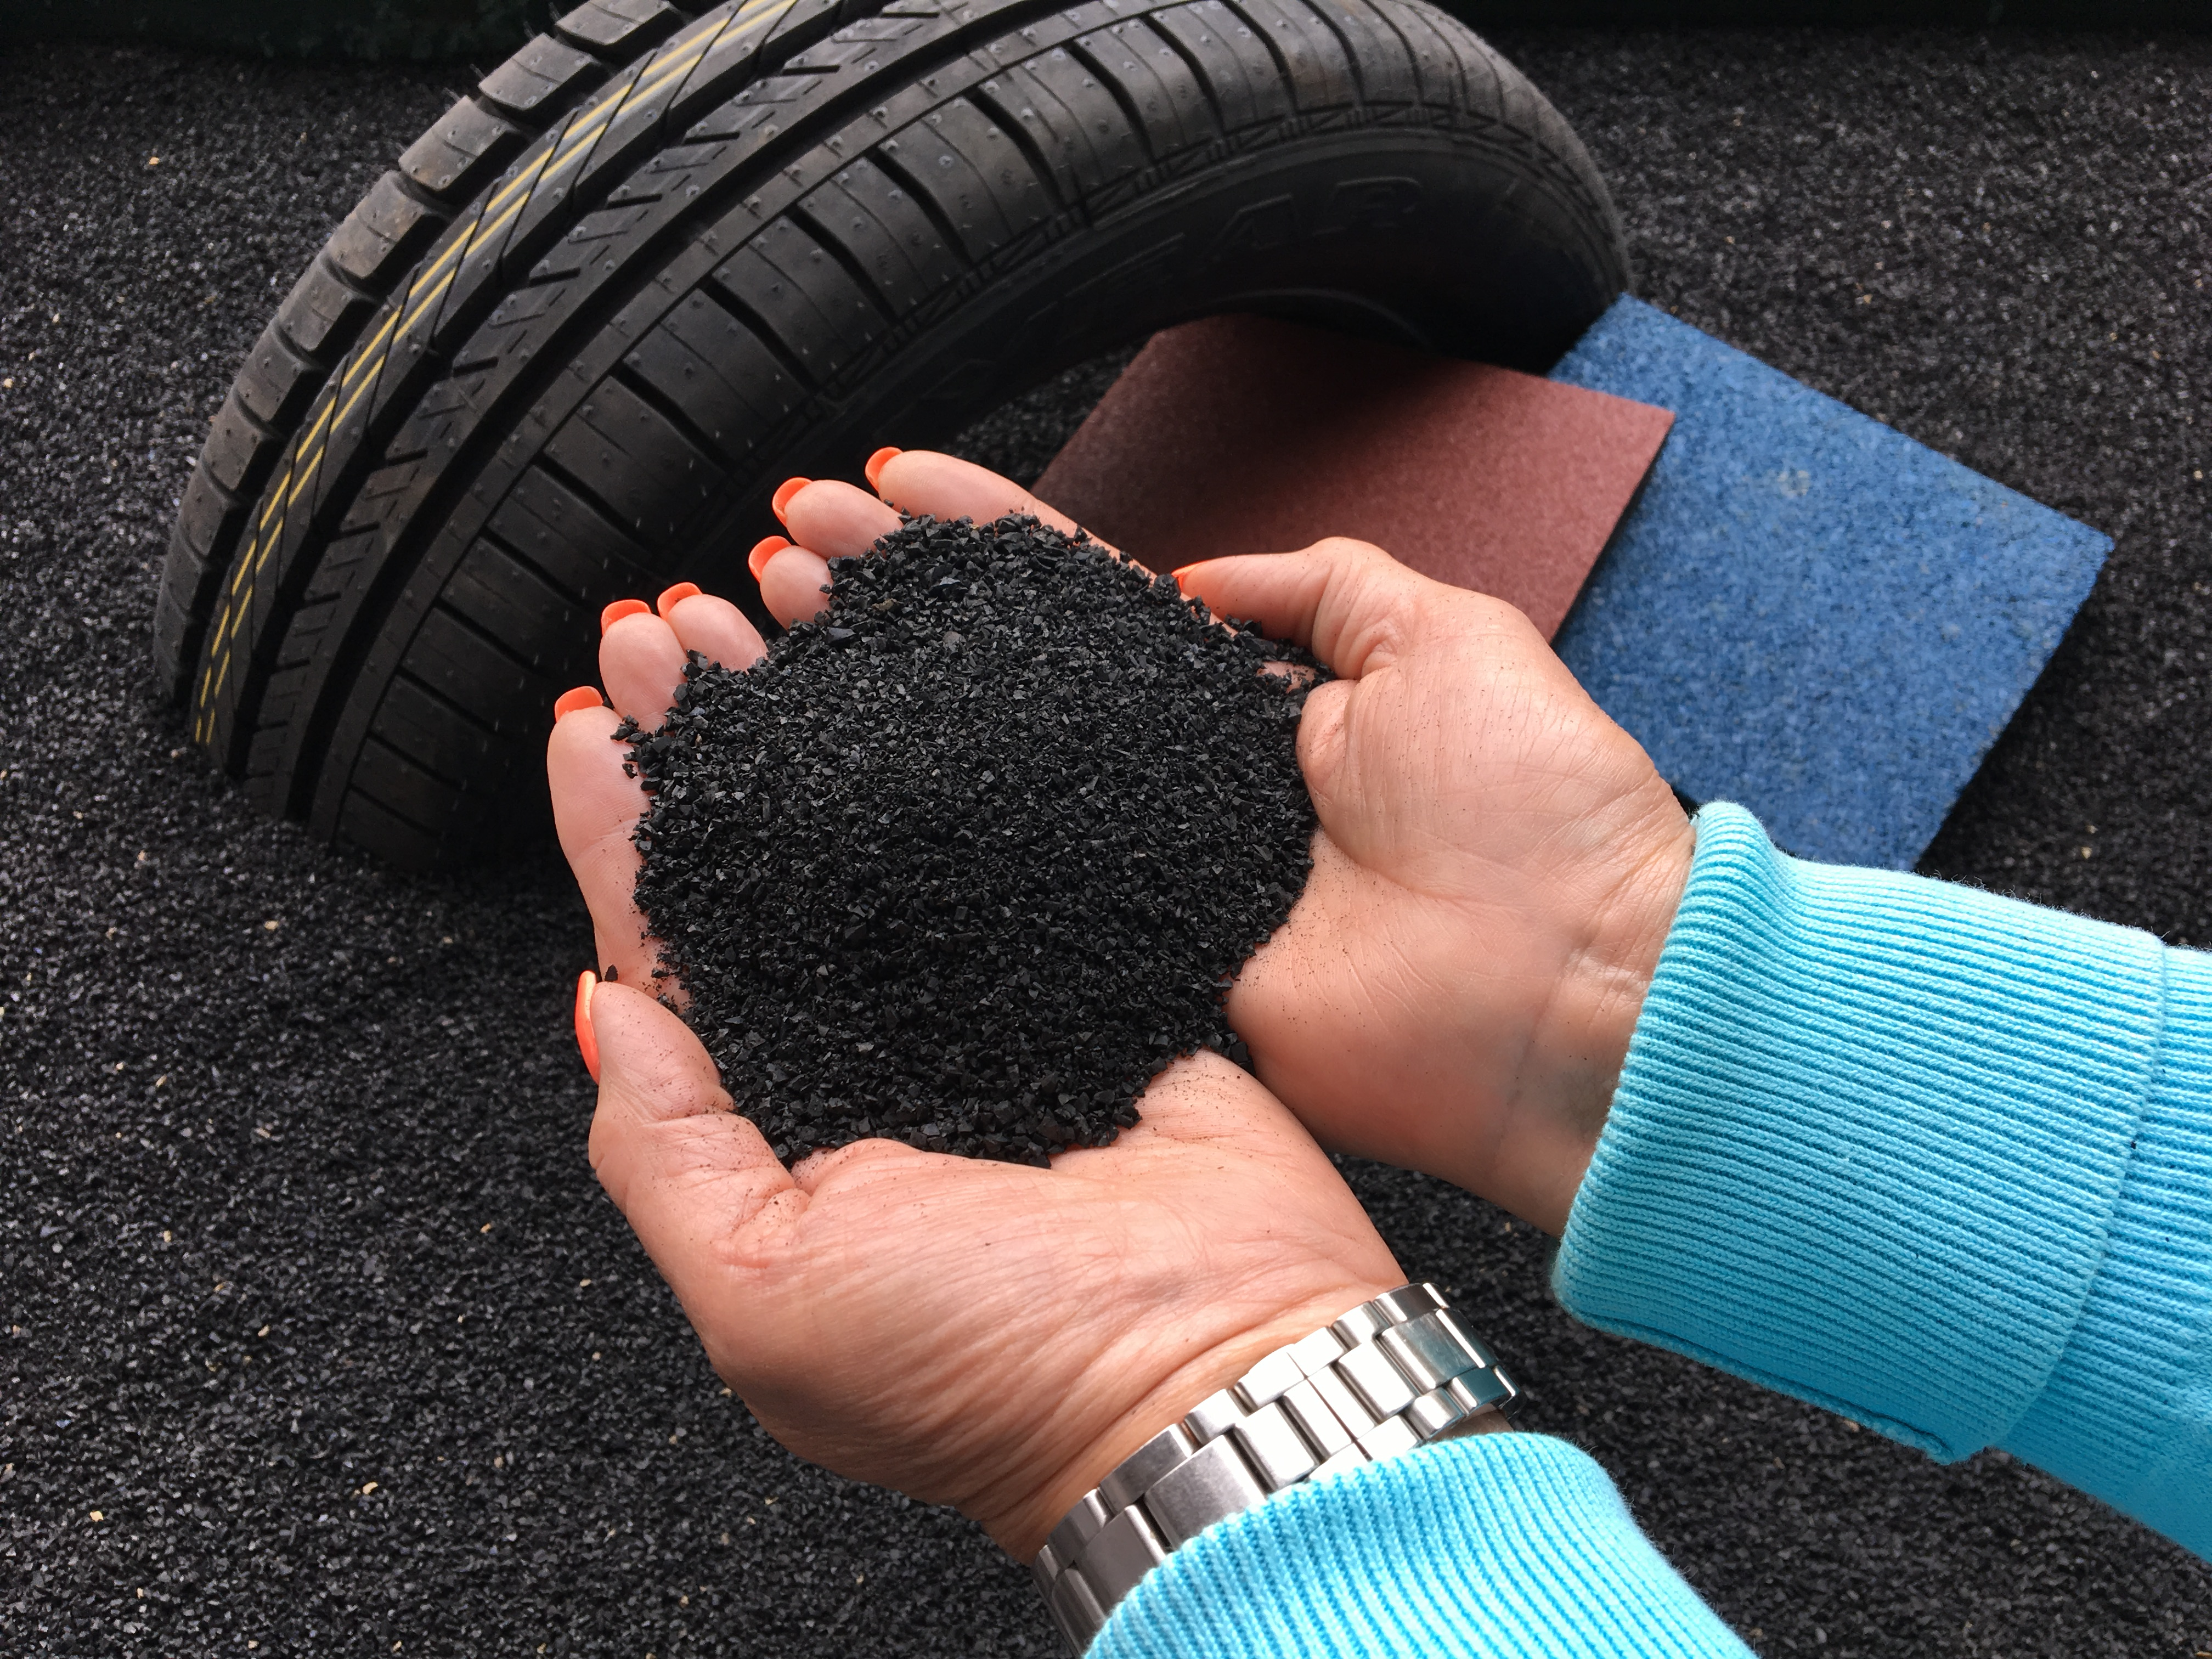 Sustainable Products from Scrap Tyres